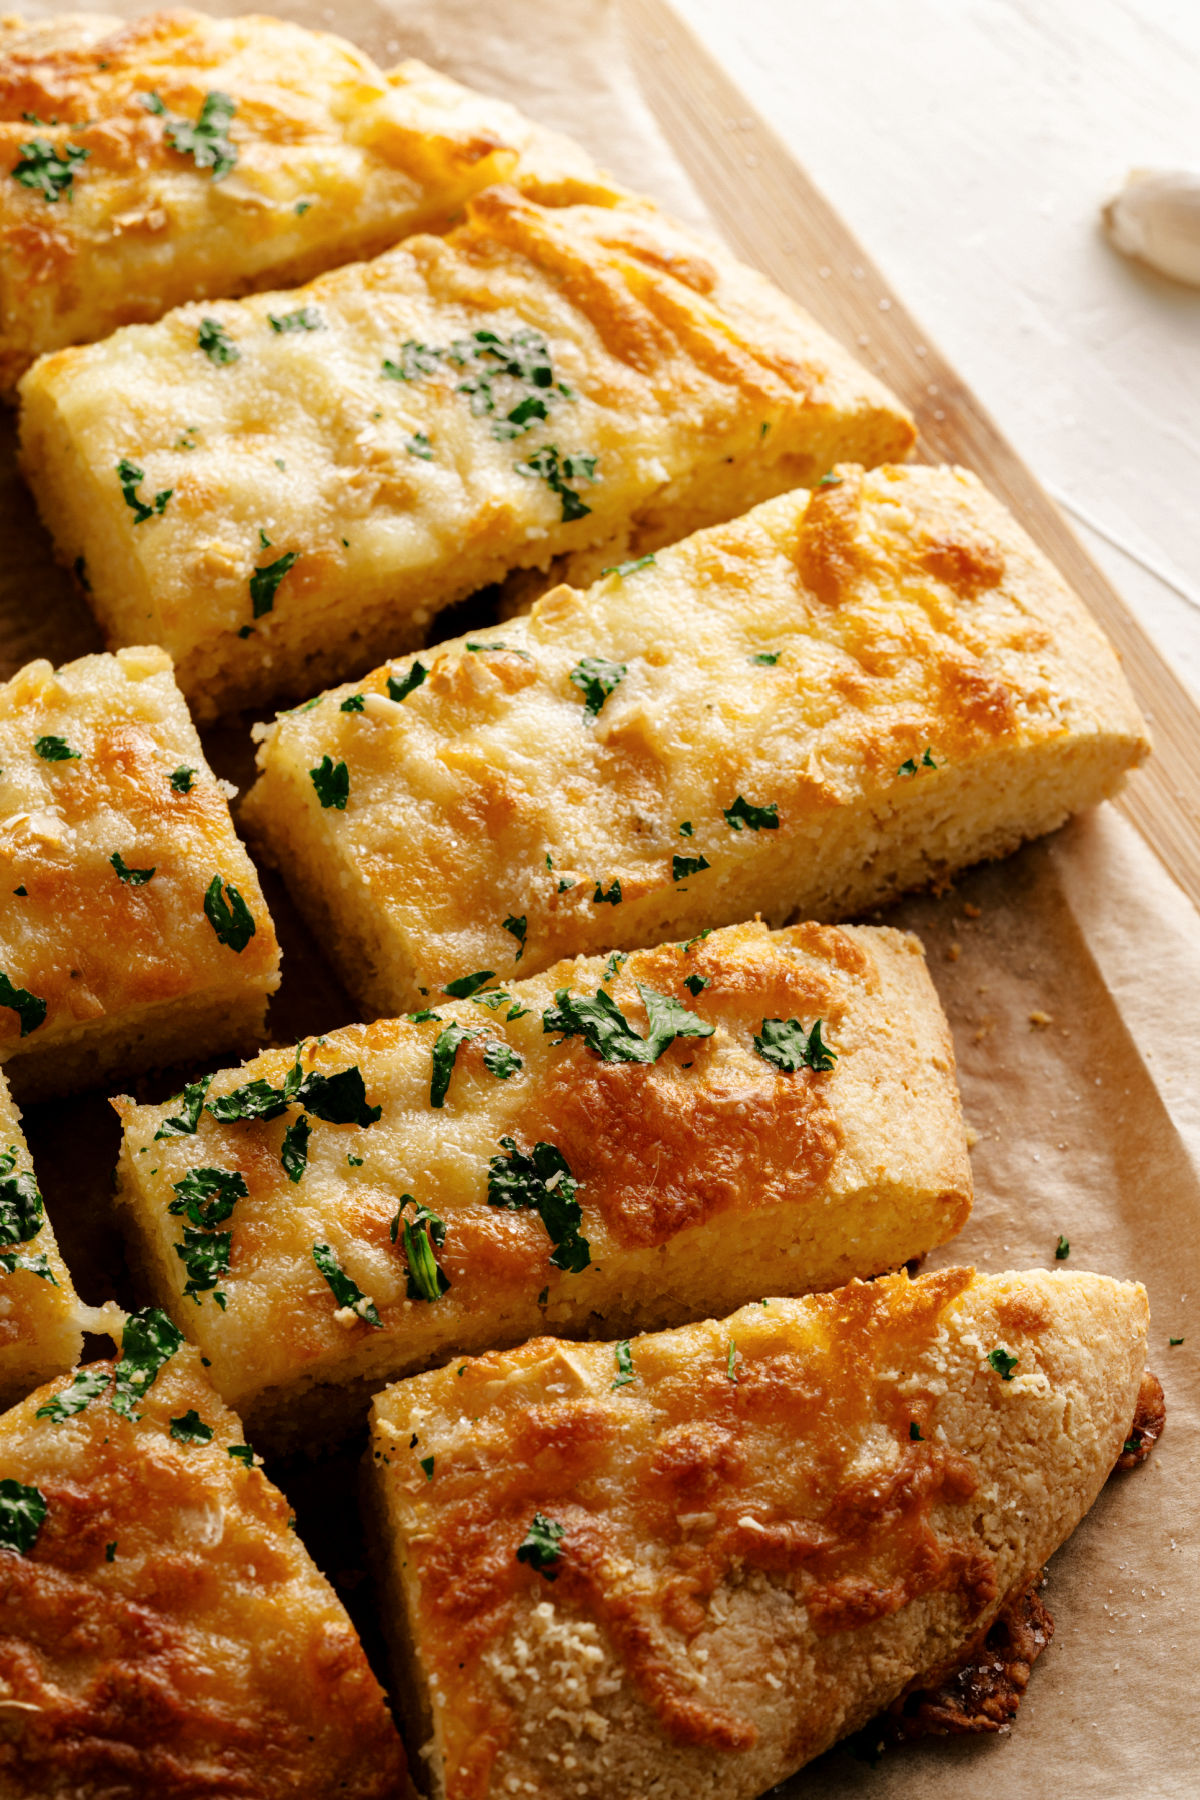 Parchment paper with gluten free garlic bread cut into pieces.